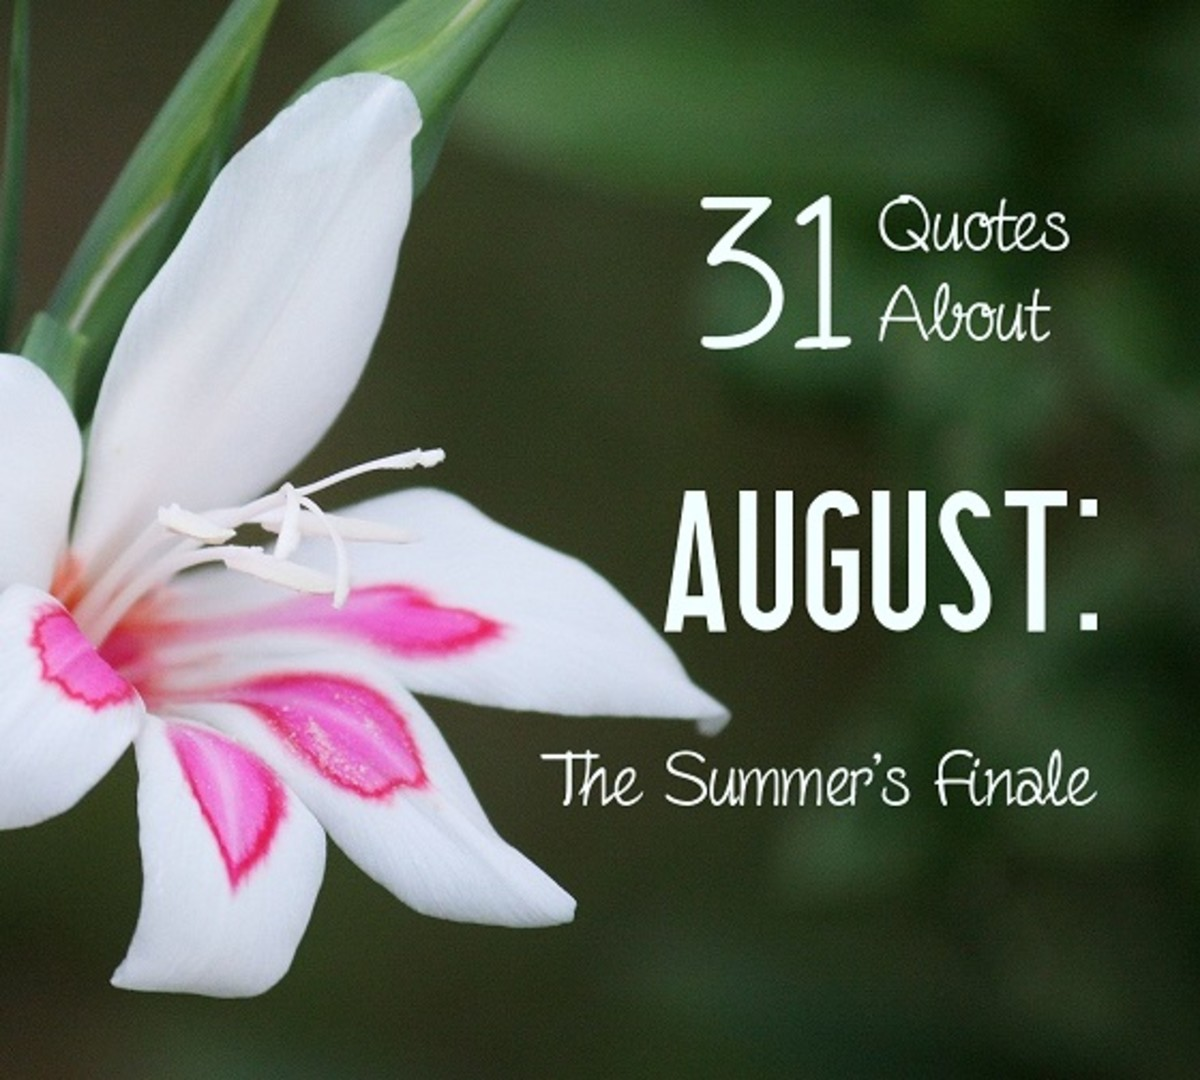 The gladiolus is one of the official flowers of August.